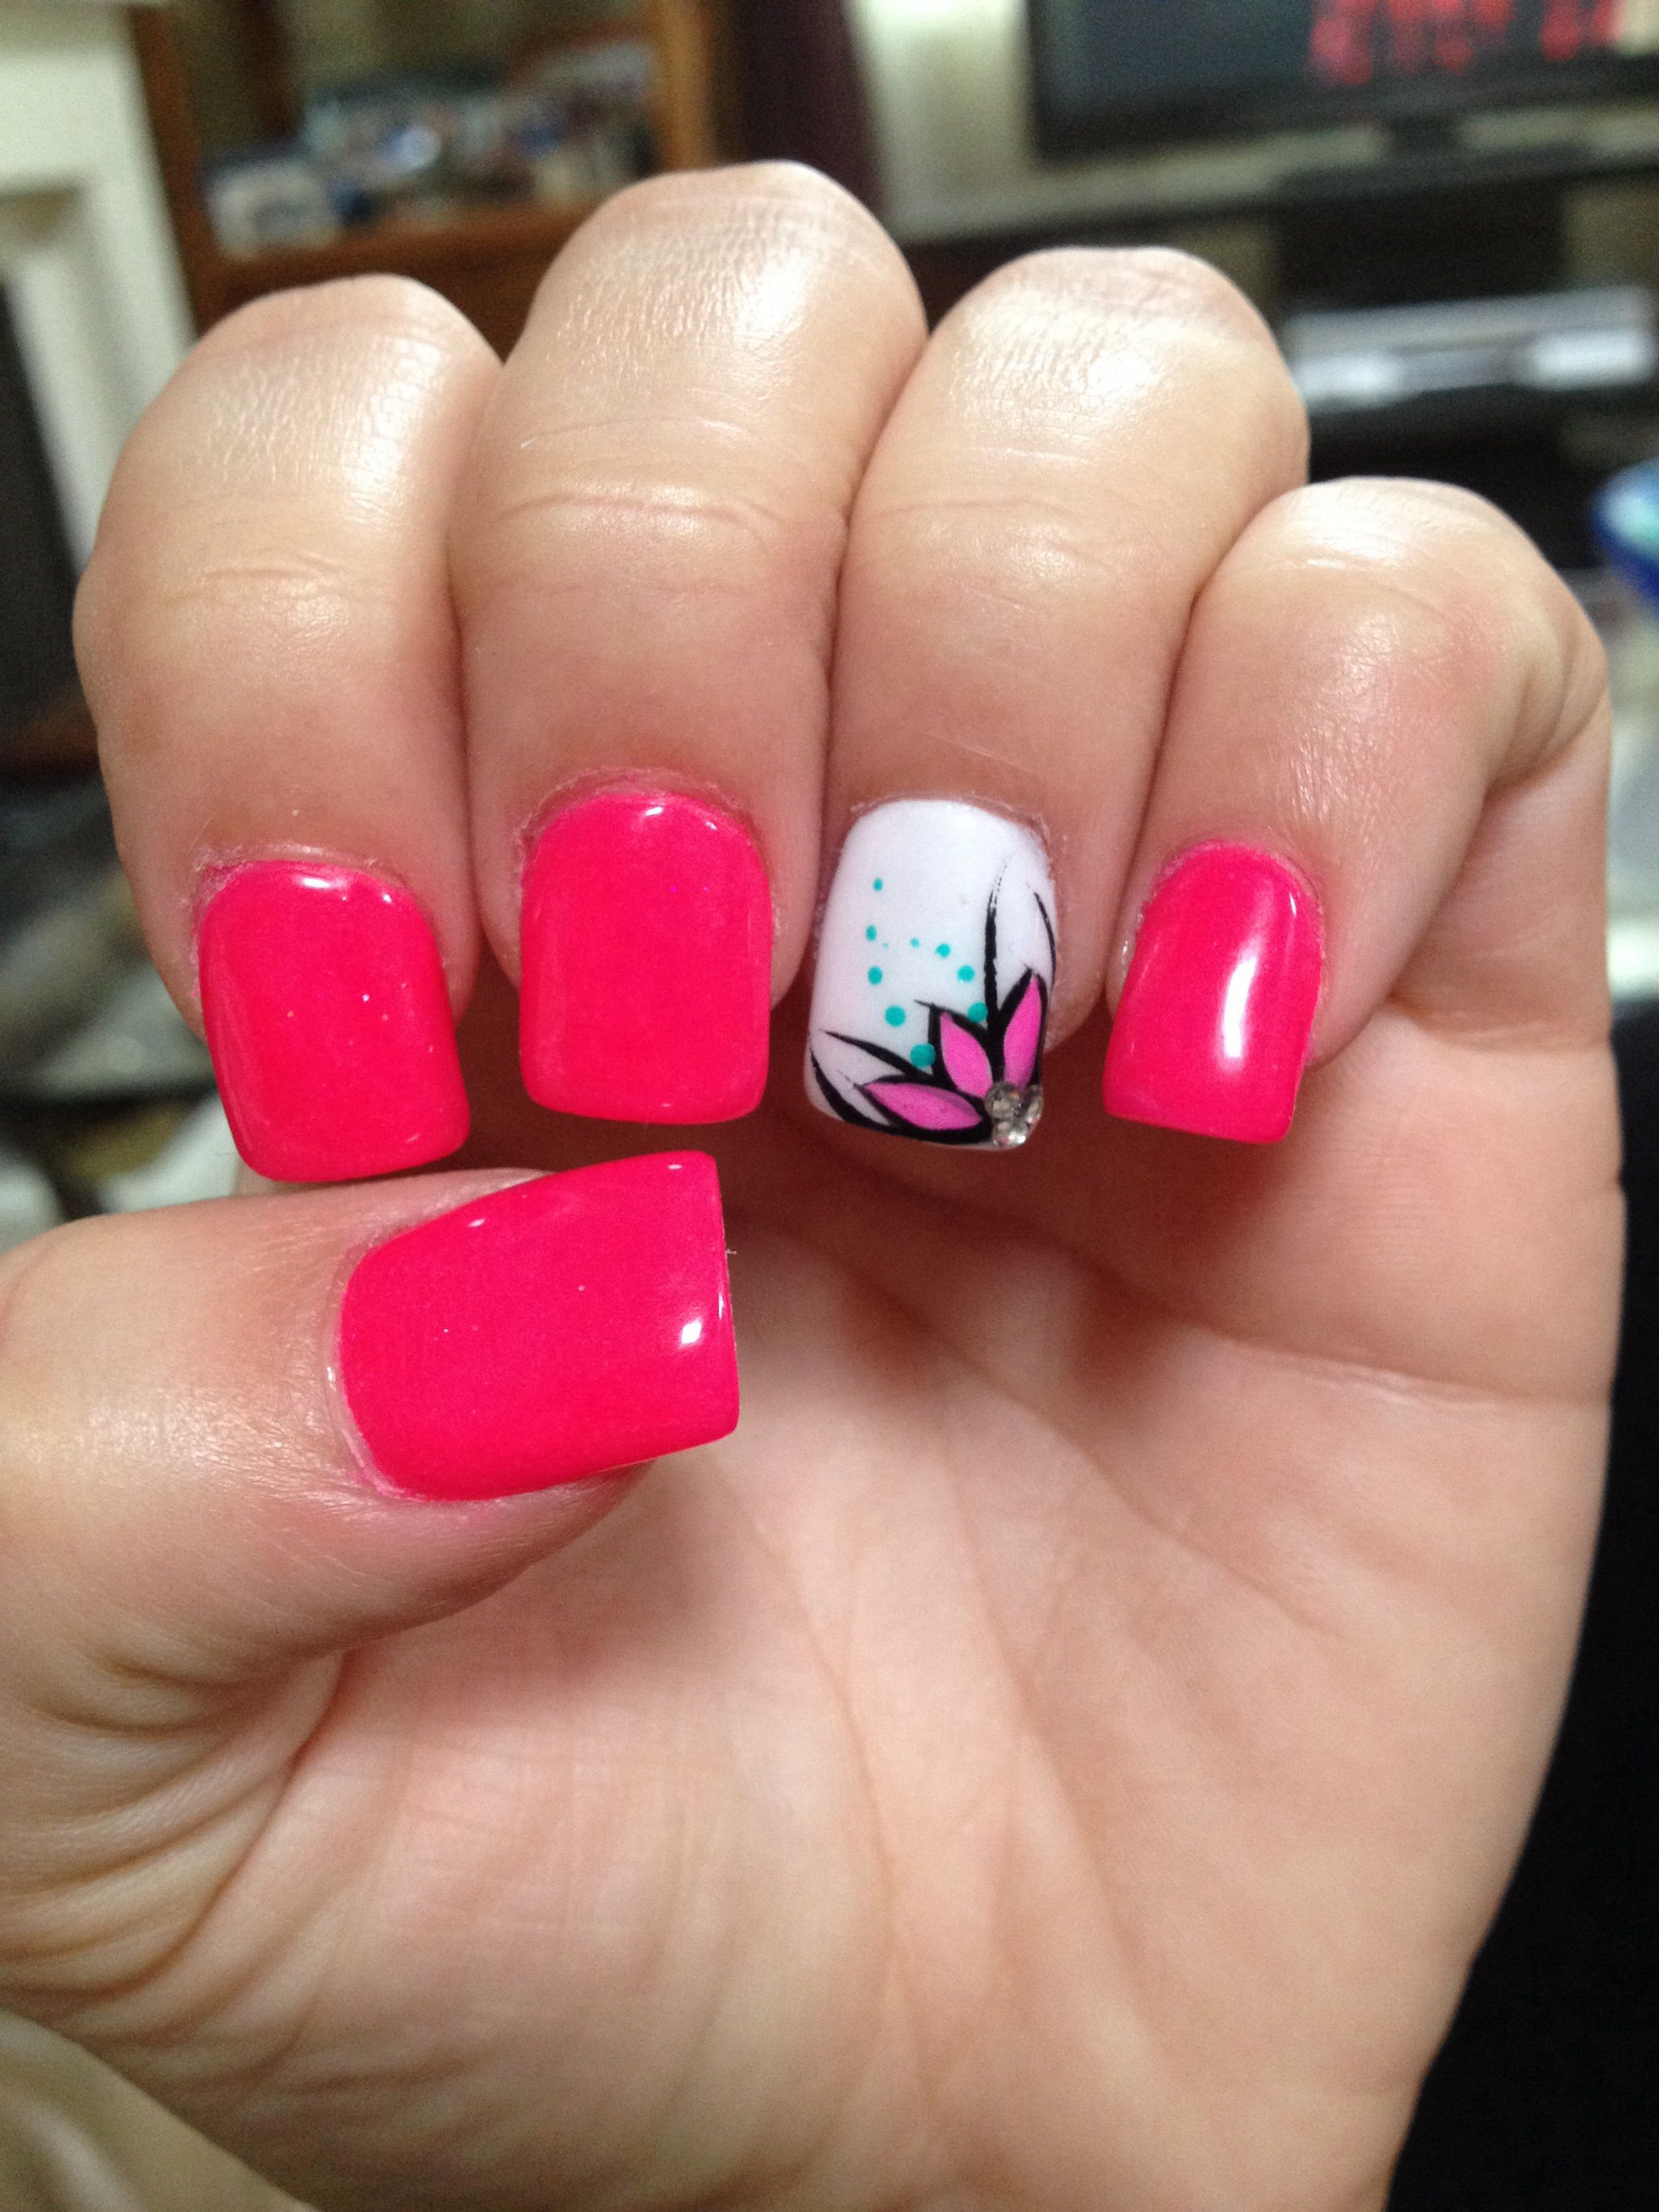 Hot pink nails with flower design | Nail Polish | Pinterest